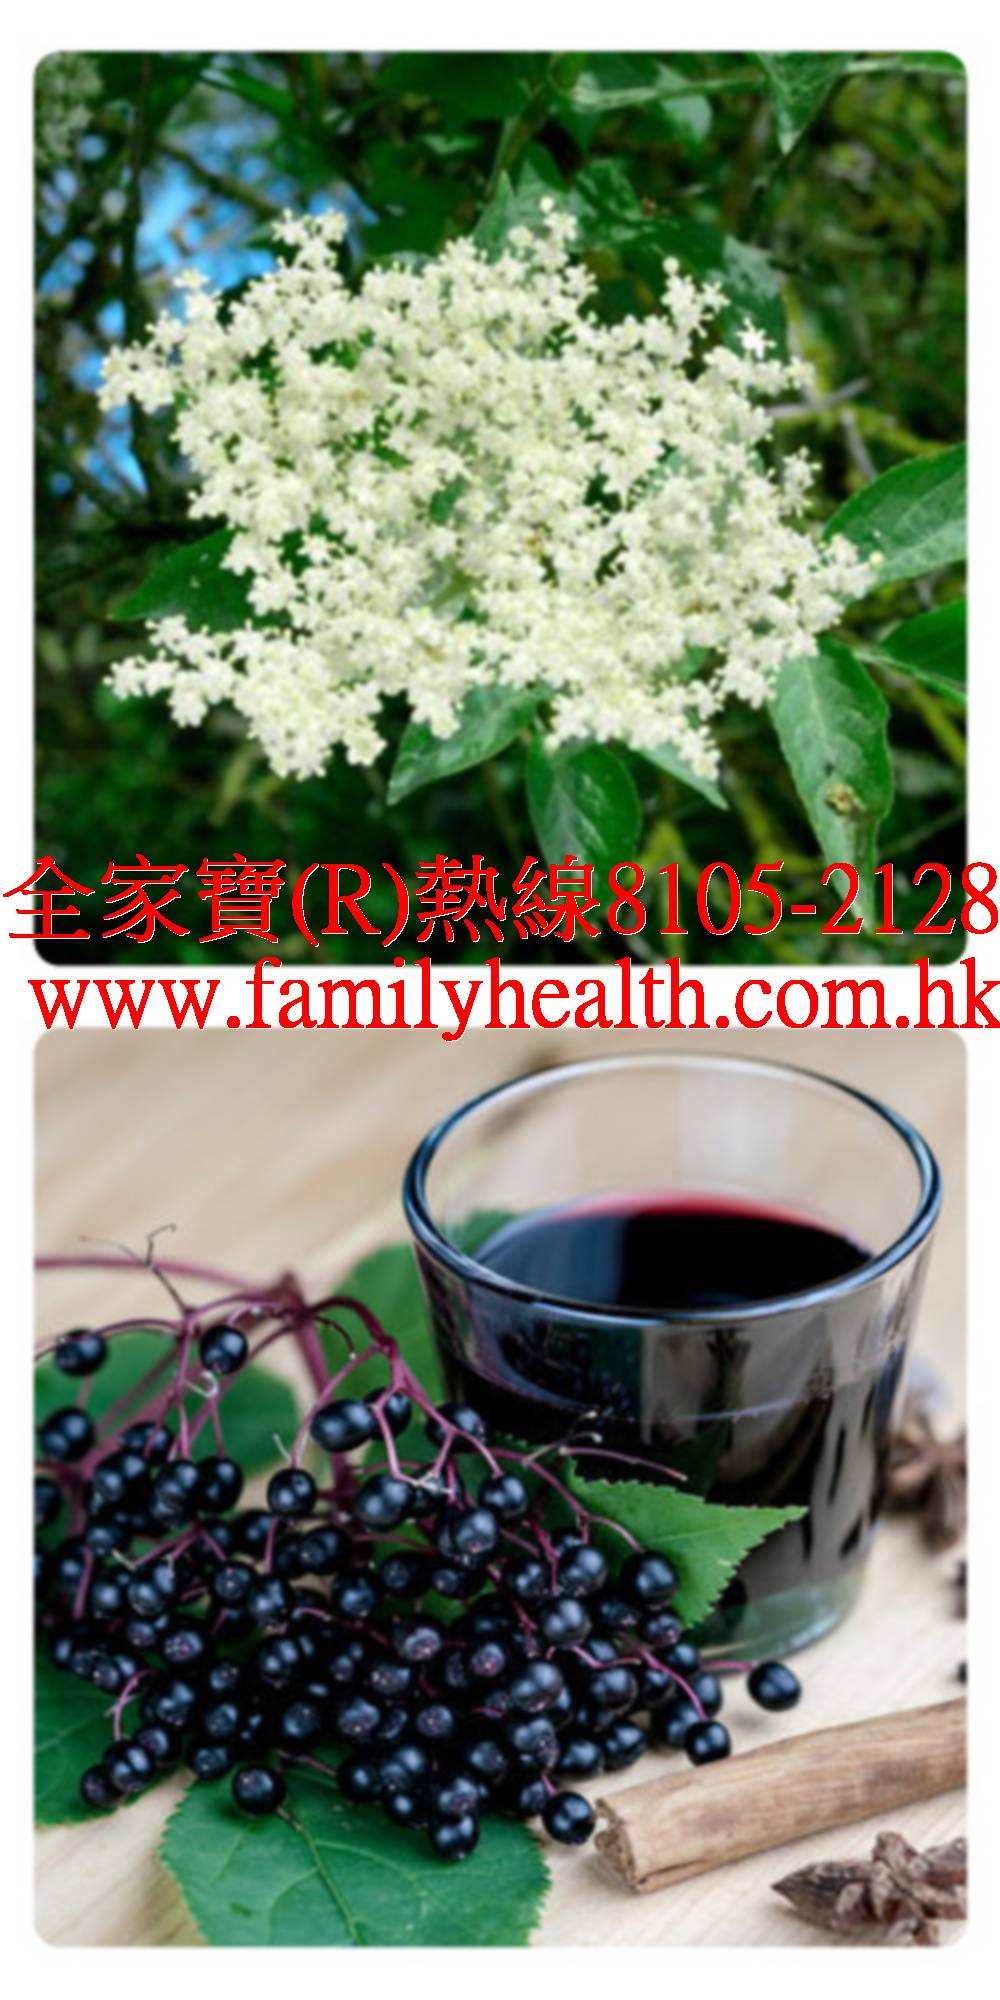 http://www.familyhealth.com.hk/files/full/948_3.jpg